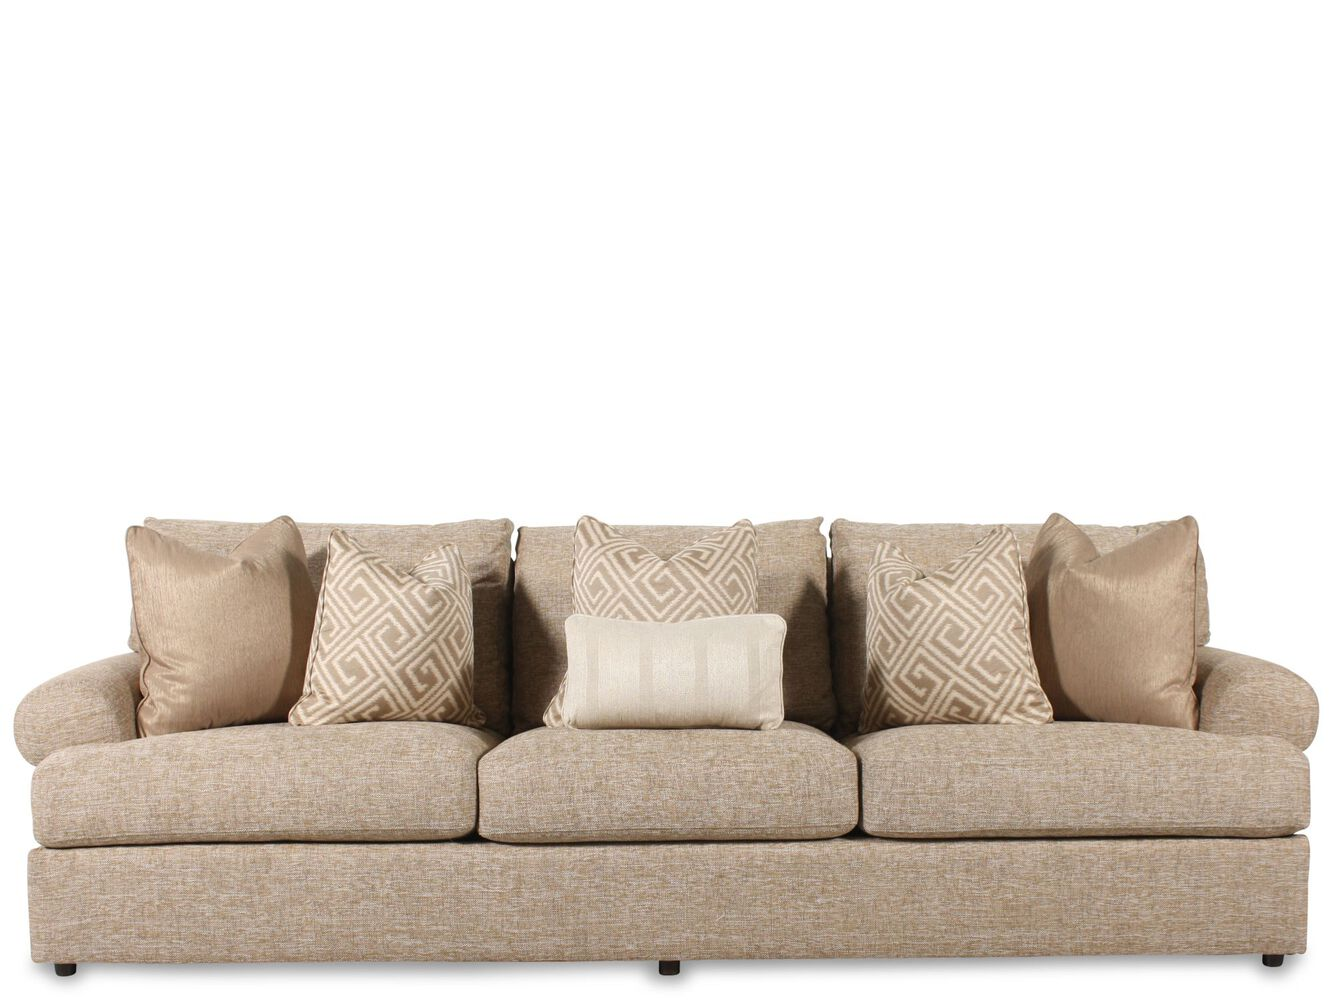 Contemporary 117 Sofa In Light Brown Mathis Brothers Furniture Bernhardt Andrew 3pc Sectional